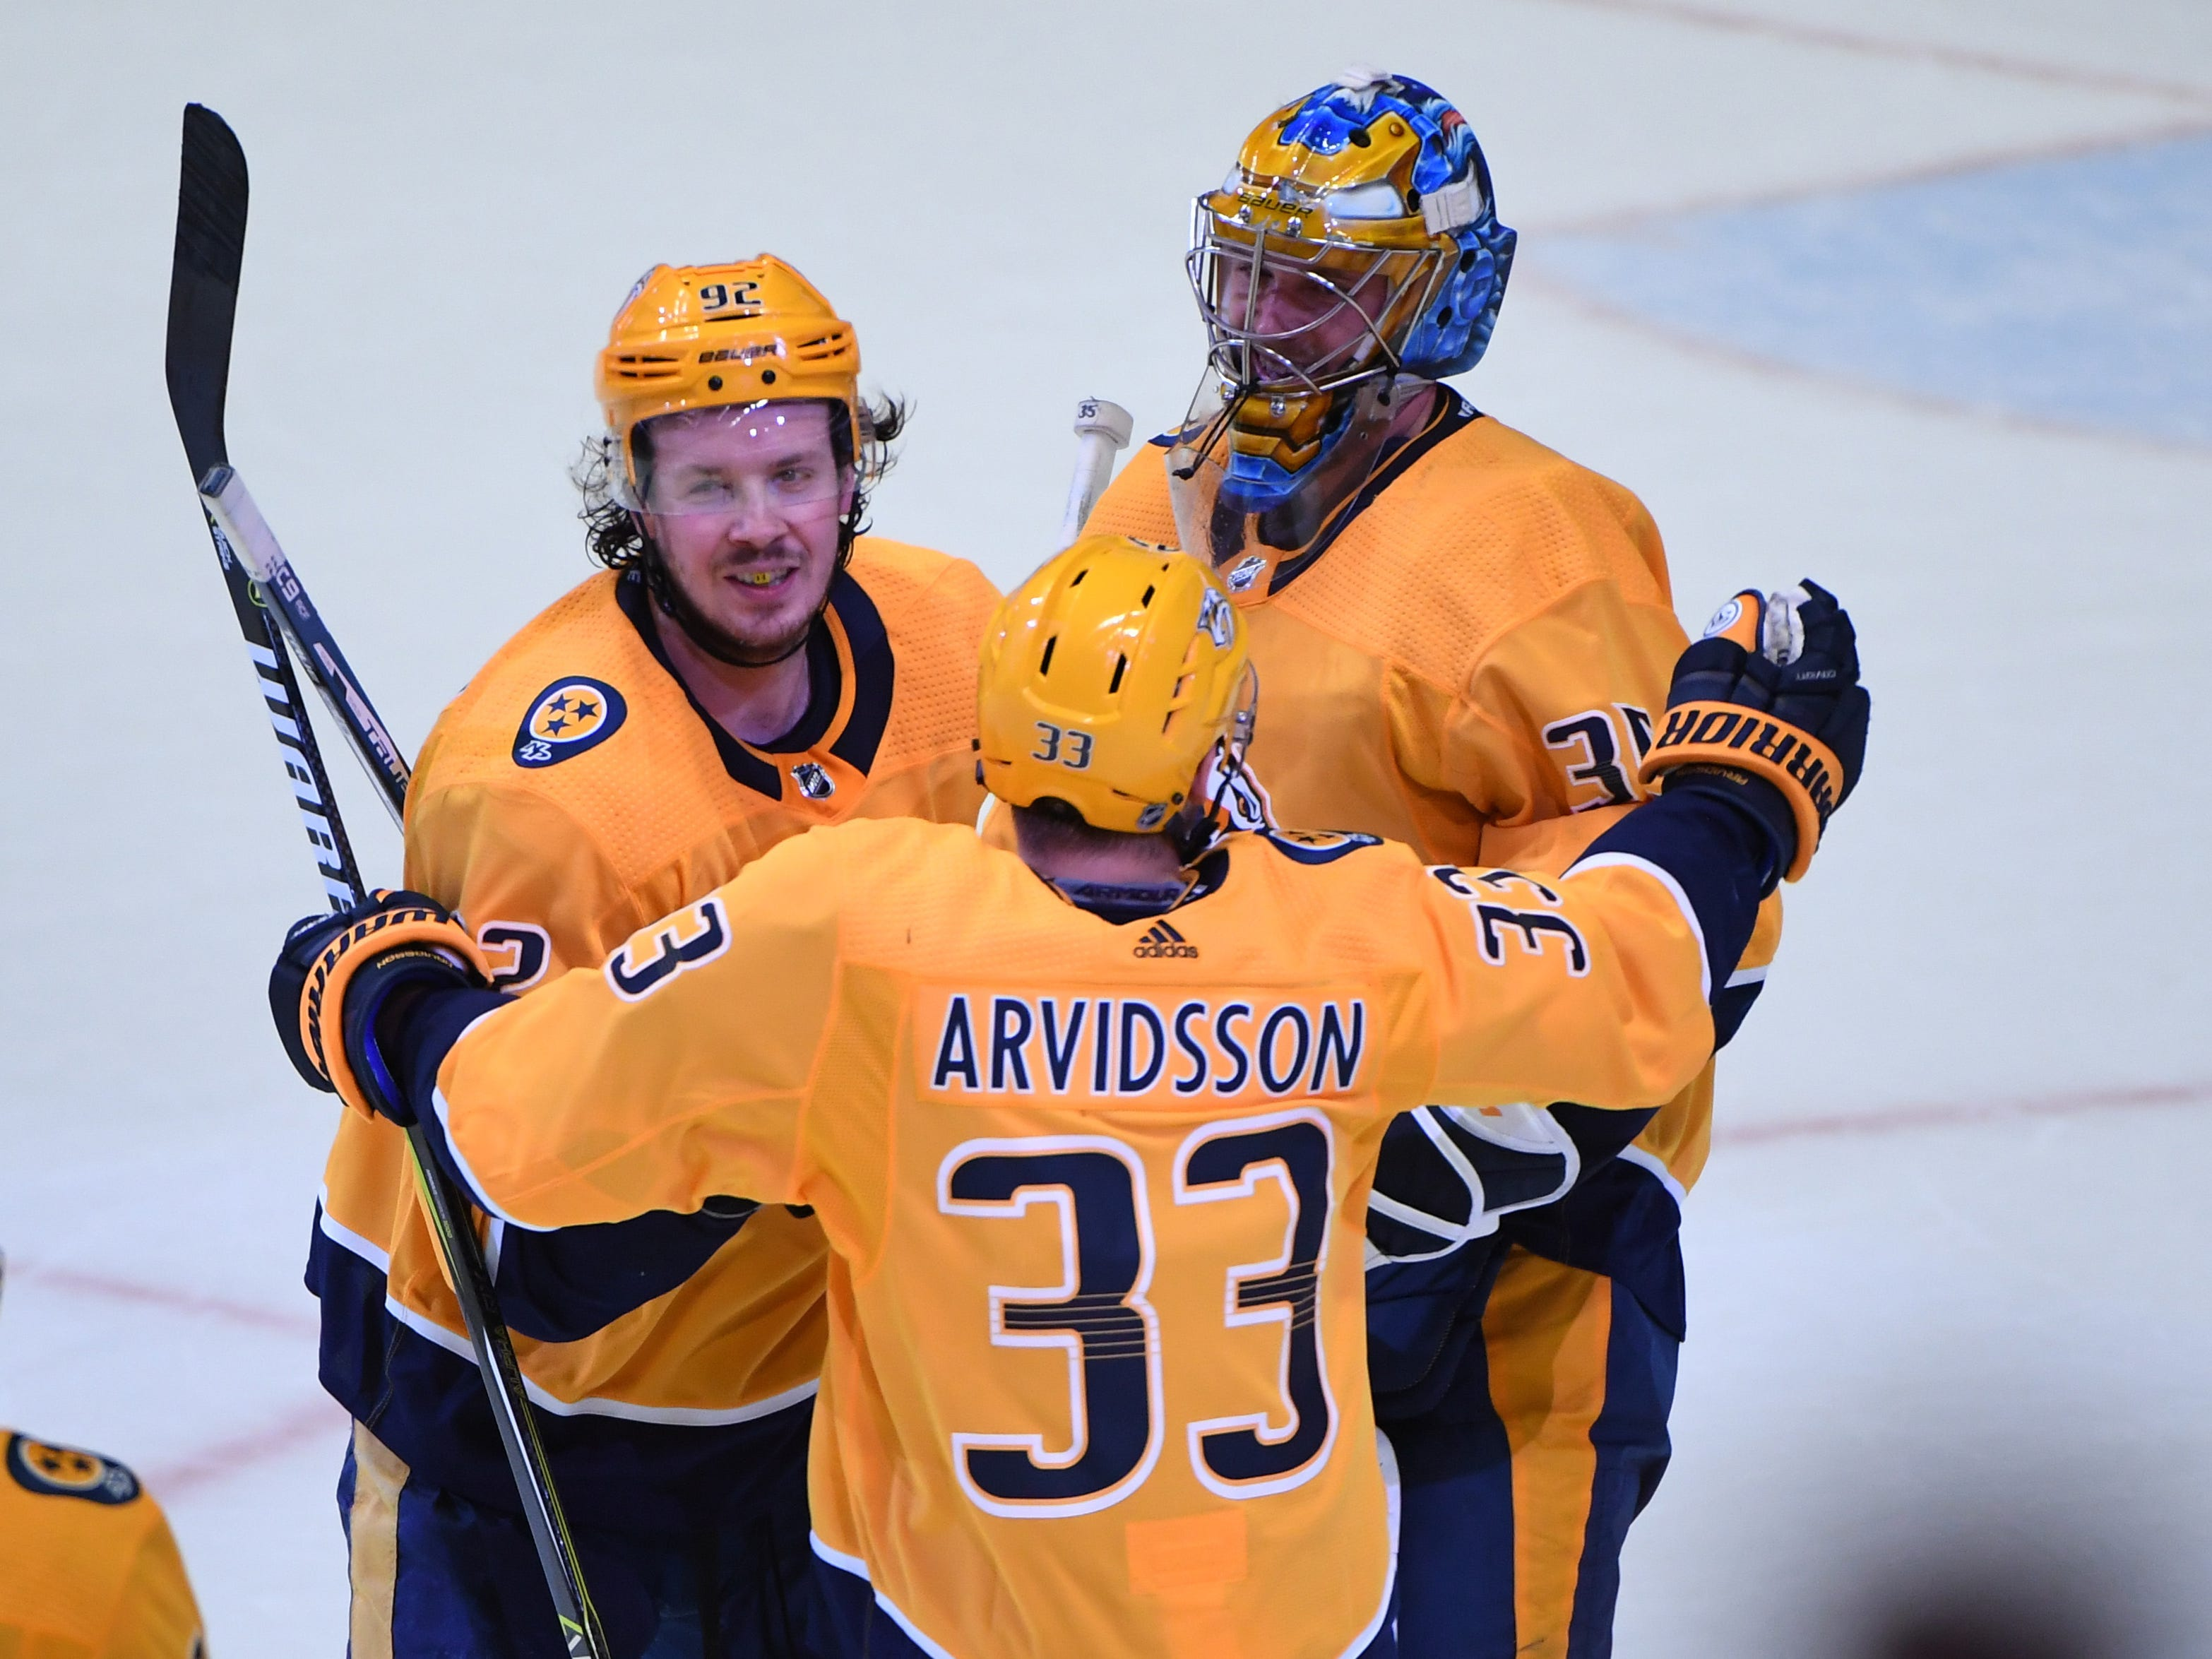 Mar 5, 2019;: Predators 5, Wild 4 (SO) -- Nashville Predators center Ryan Johansen (92) Nashville Predators right wing Viktor Arvidsson (33) and Nashville Predators goaltender Pekka Rinne (35) celebrate after a shootout win against the Minnesota Wild at Bridgestone Arena.